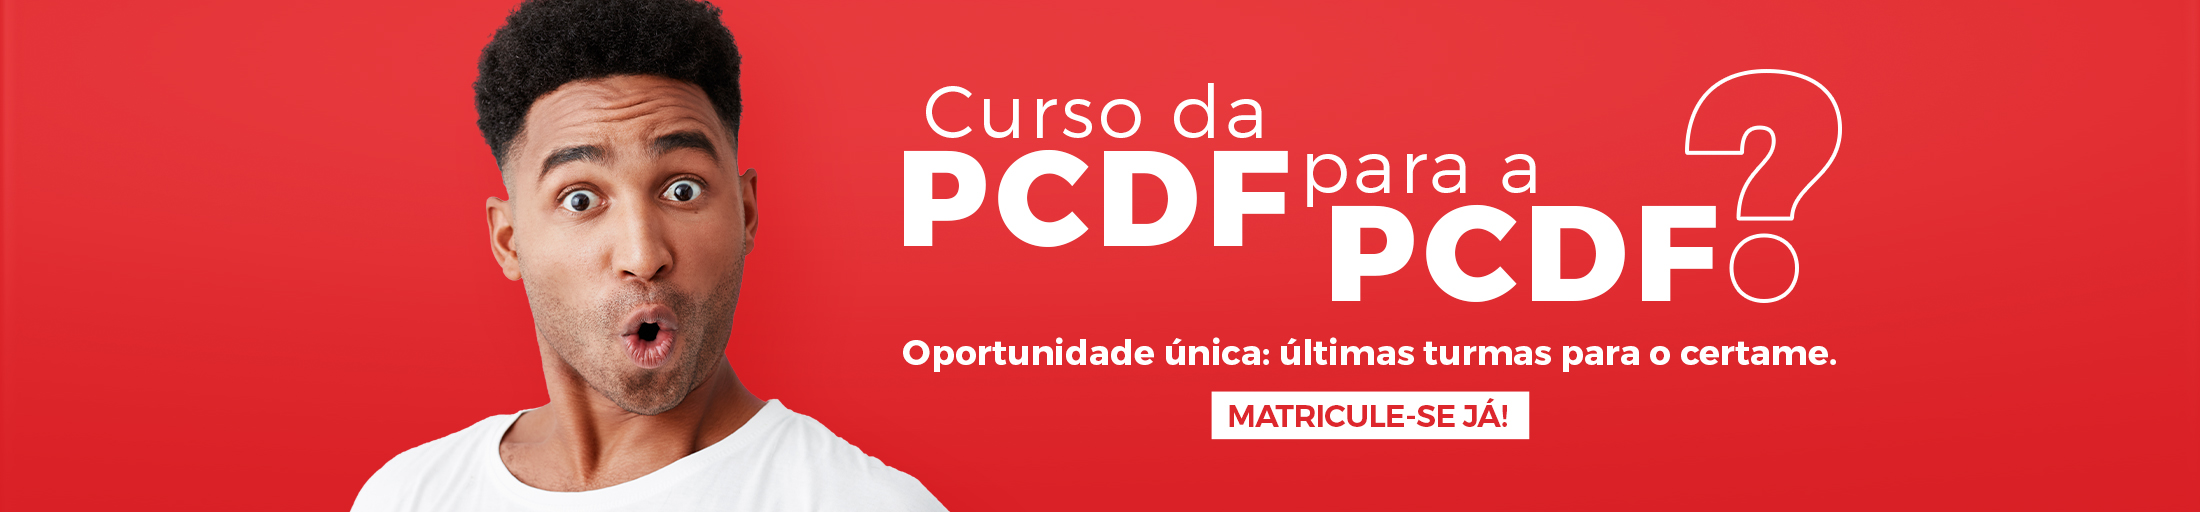 BANNER_SITE_VOLTA_AS_AULAS_2020_PCDF-1